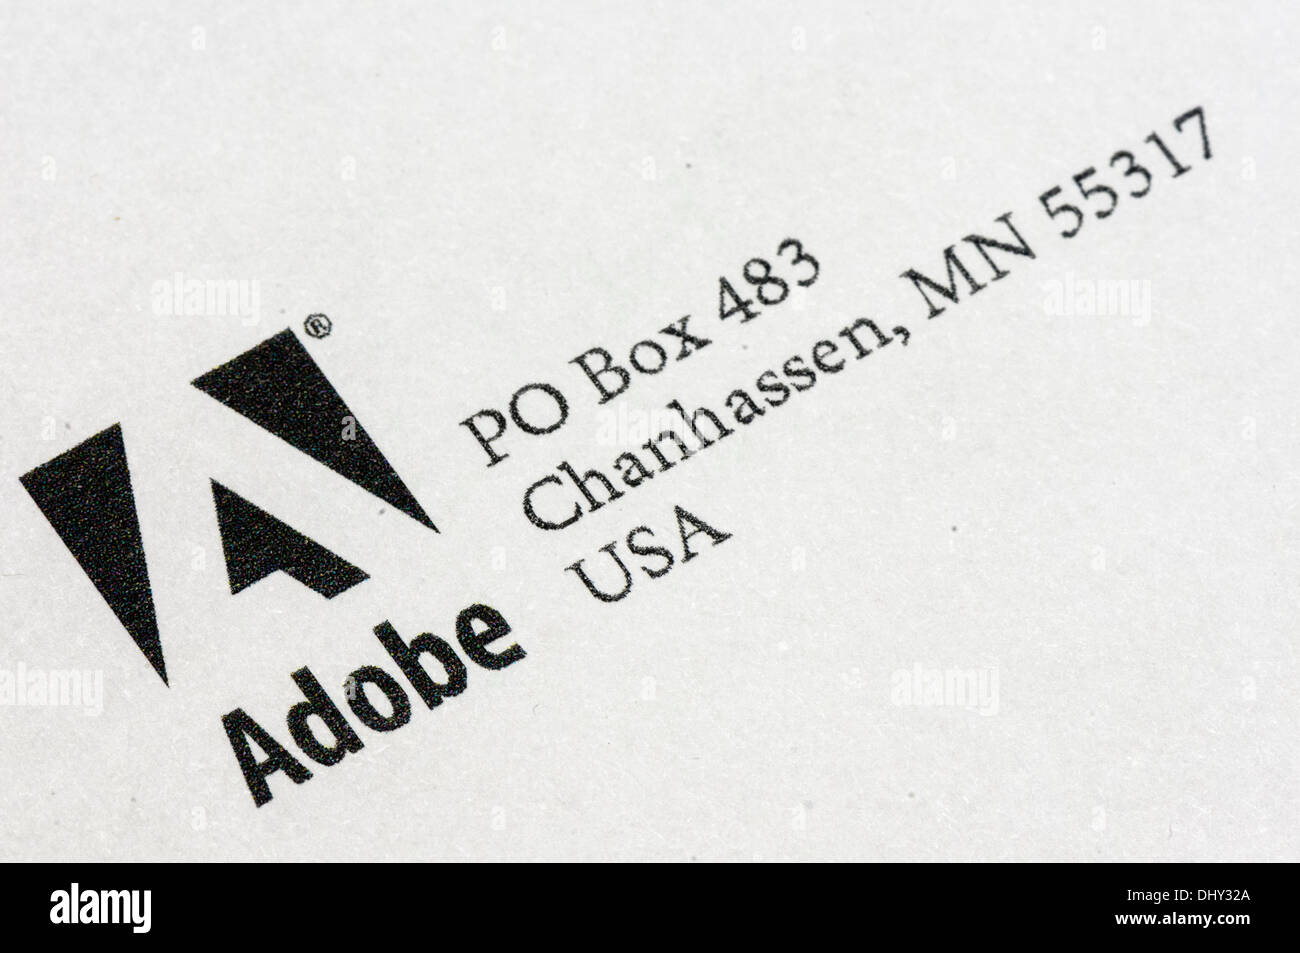 Worldwide, 16th Nov 2013 - Logo of Adobe at the top of a letter. Credit: © Stephen Barnes/Alamy Live News - Stock Image